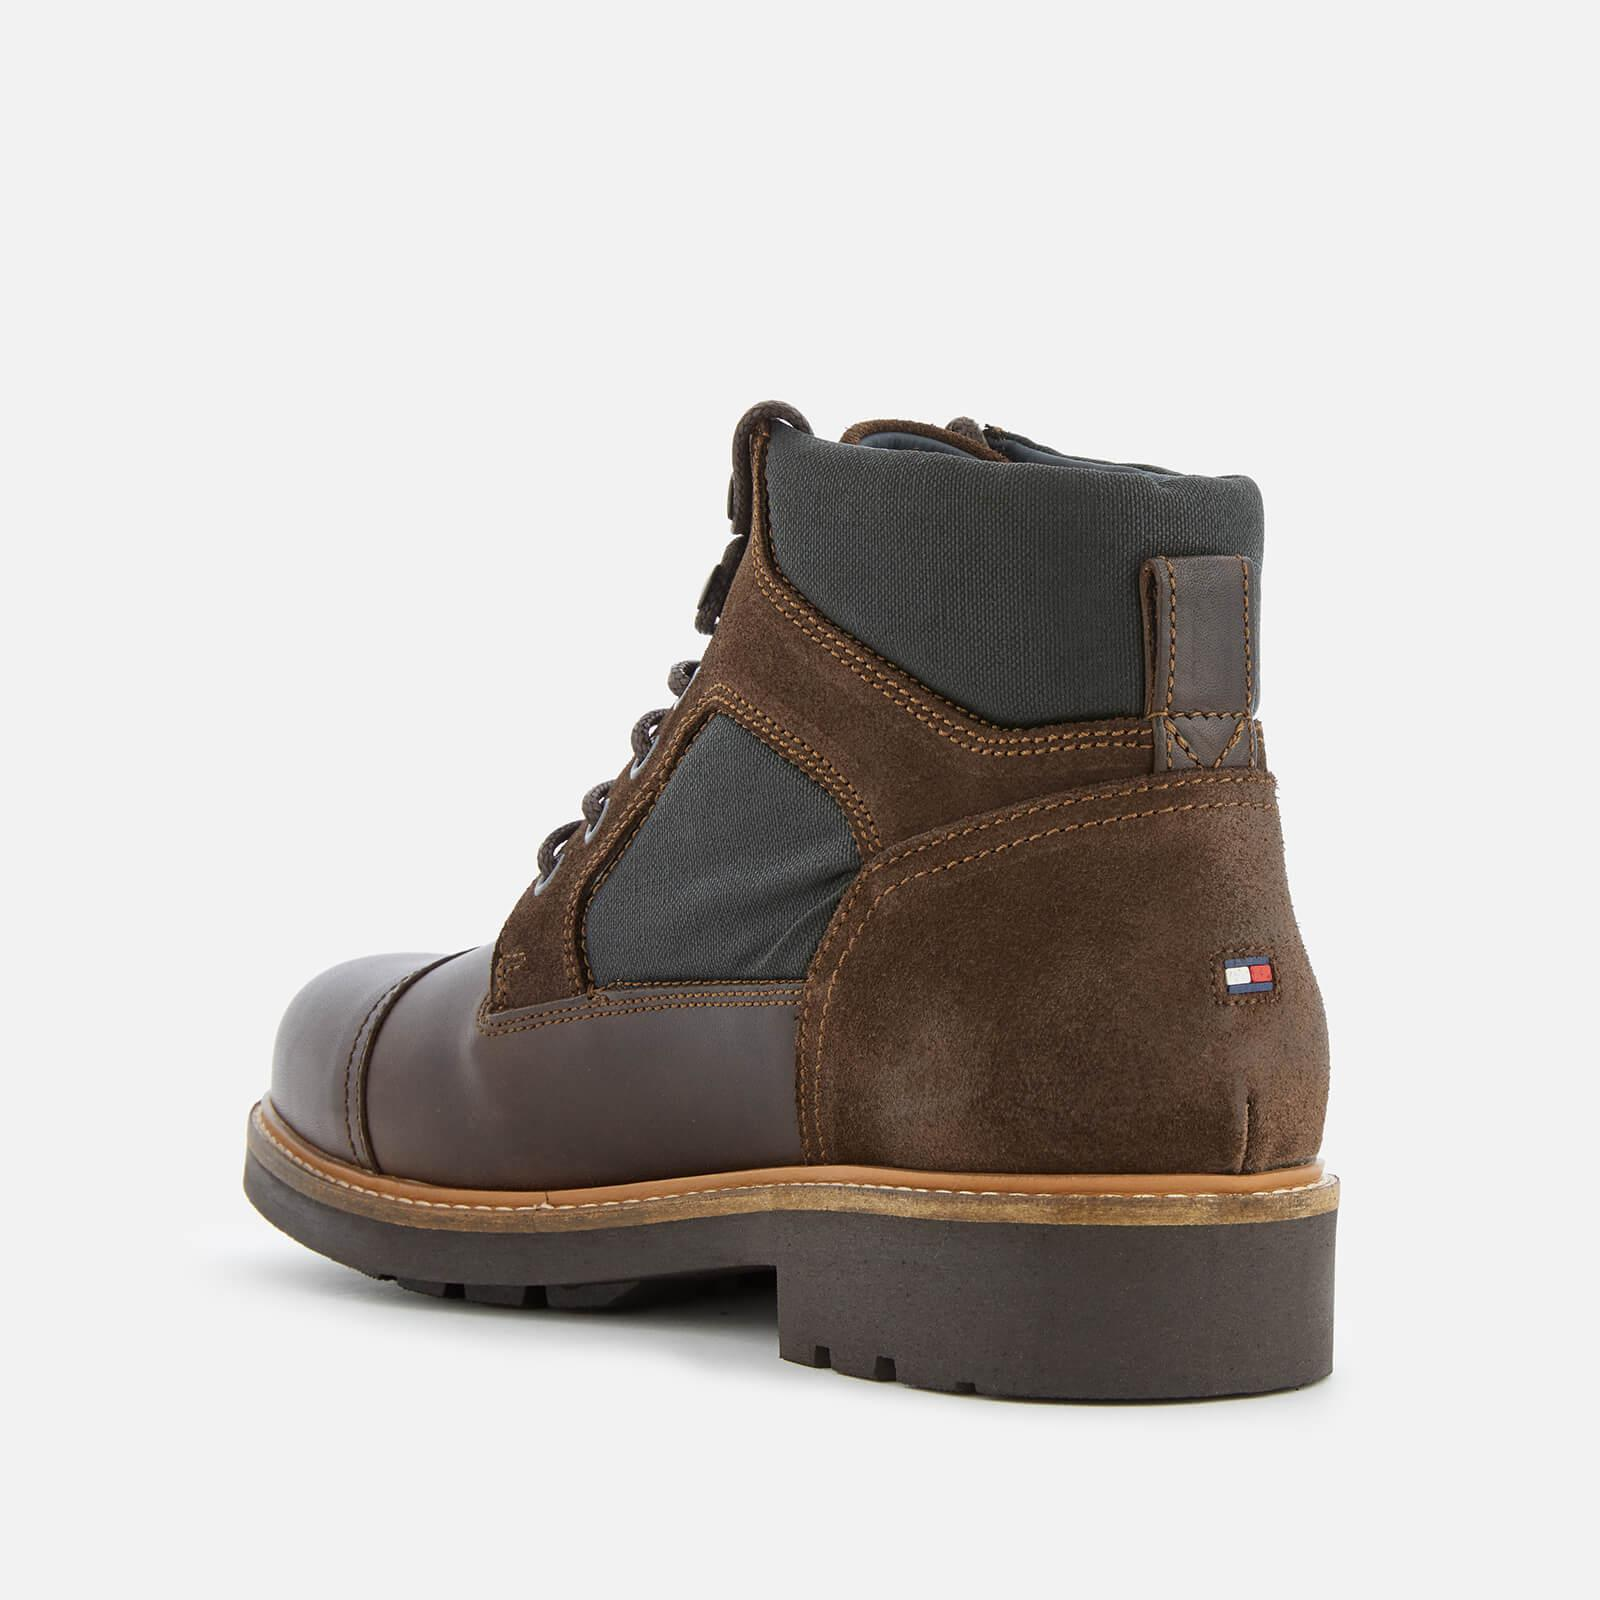 7019c15a8 Tommy Hilfiger - Brown Active Leather Lace-up Boots for Men - Lyst. View  fullscreen